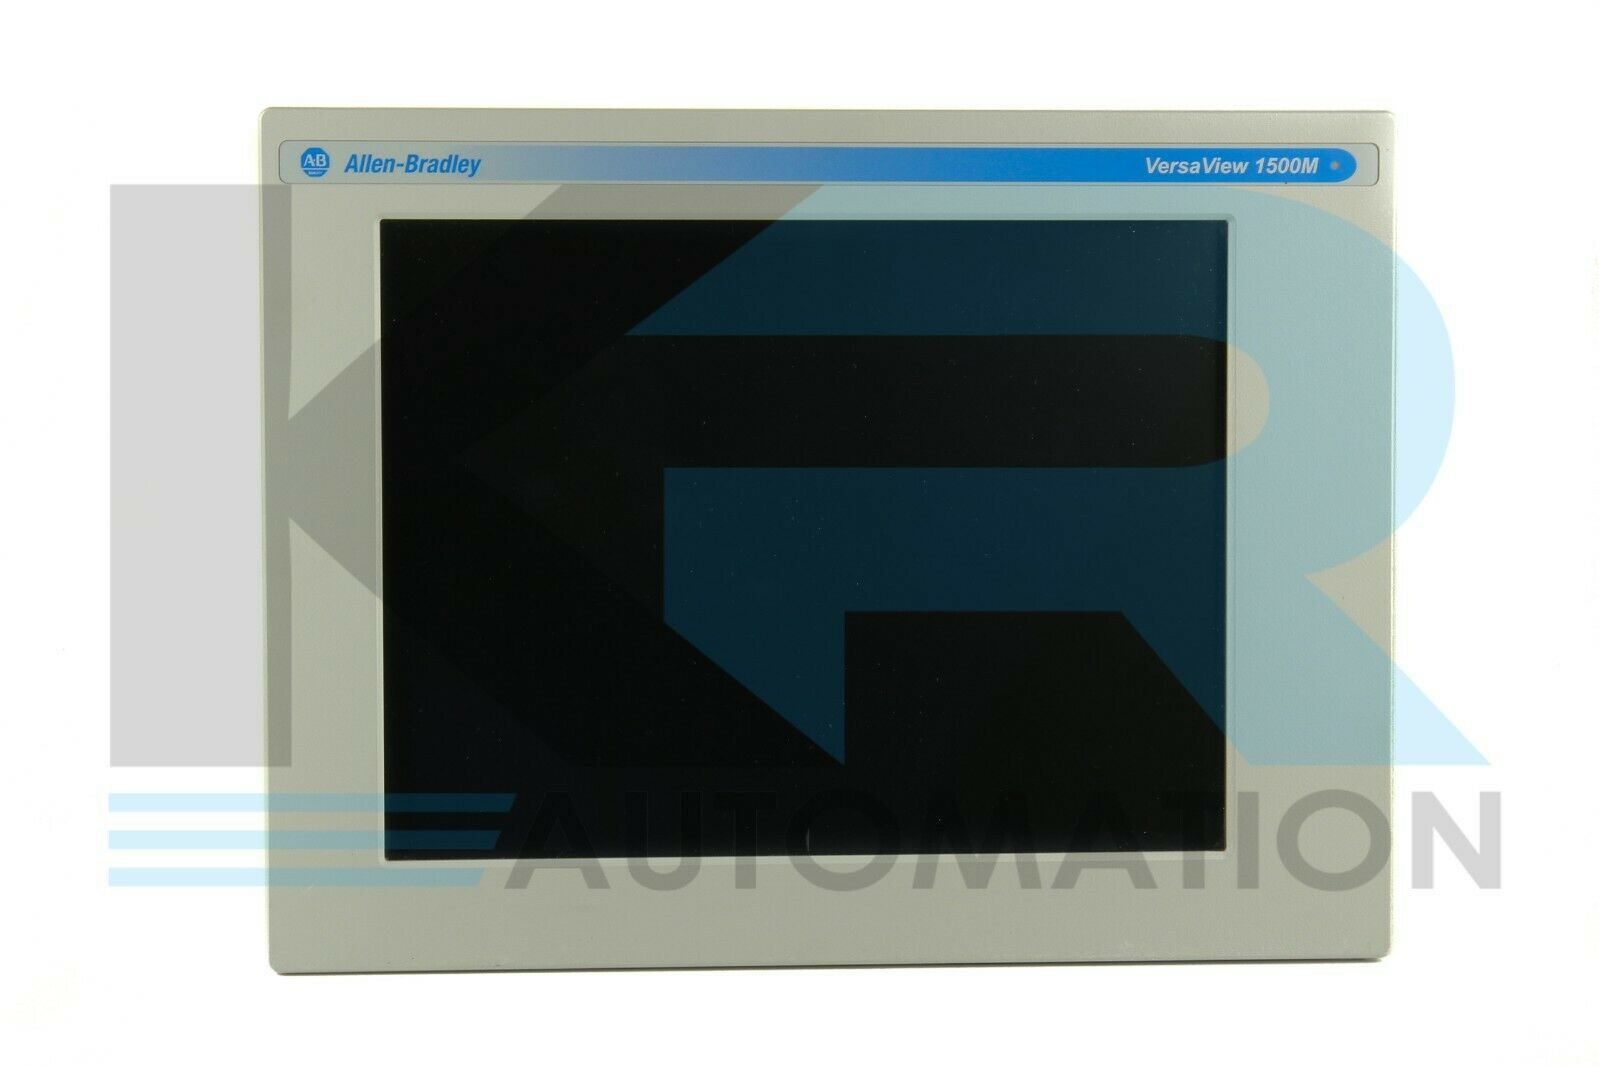 Allen Bradley 6186-M15AL /B VersaView 1500M Operator Touchscreen Interface Rev B